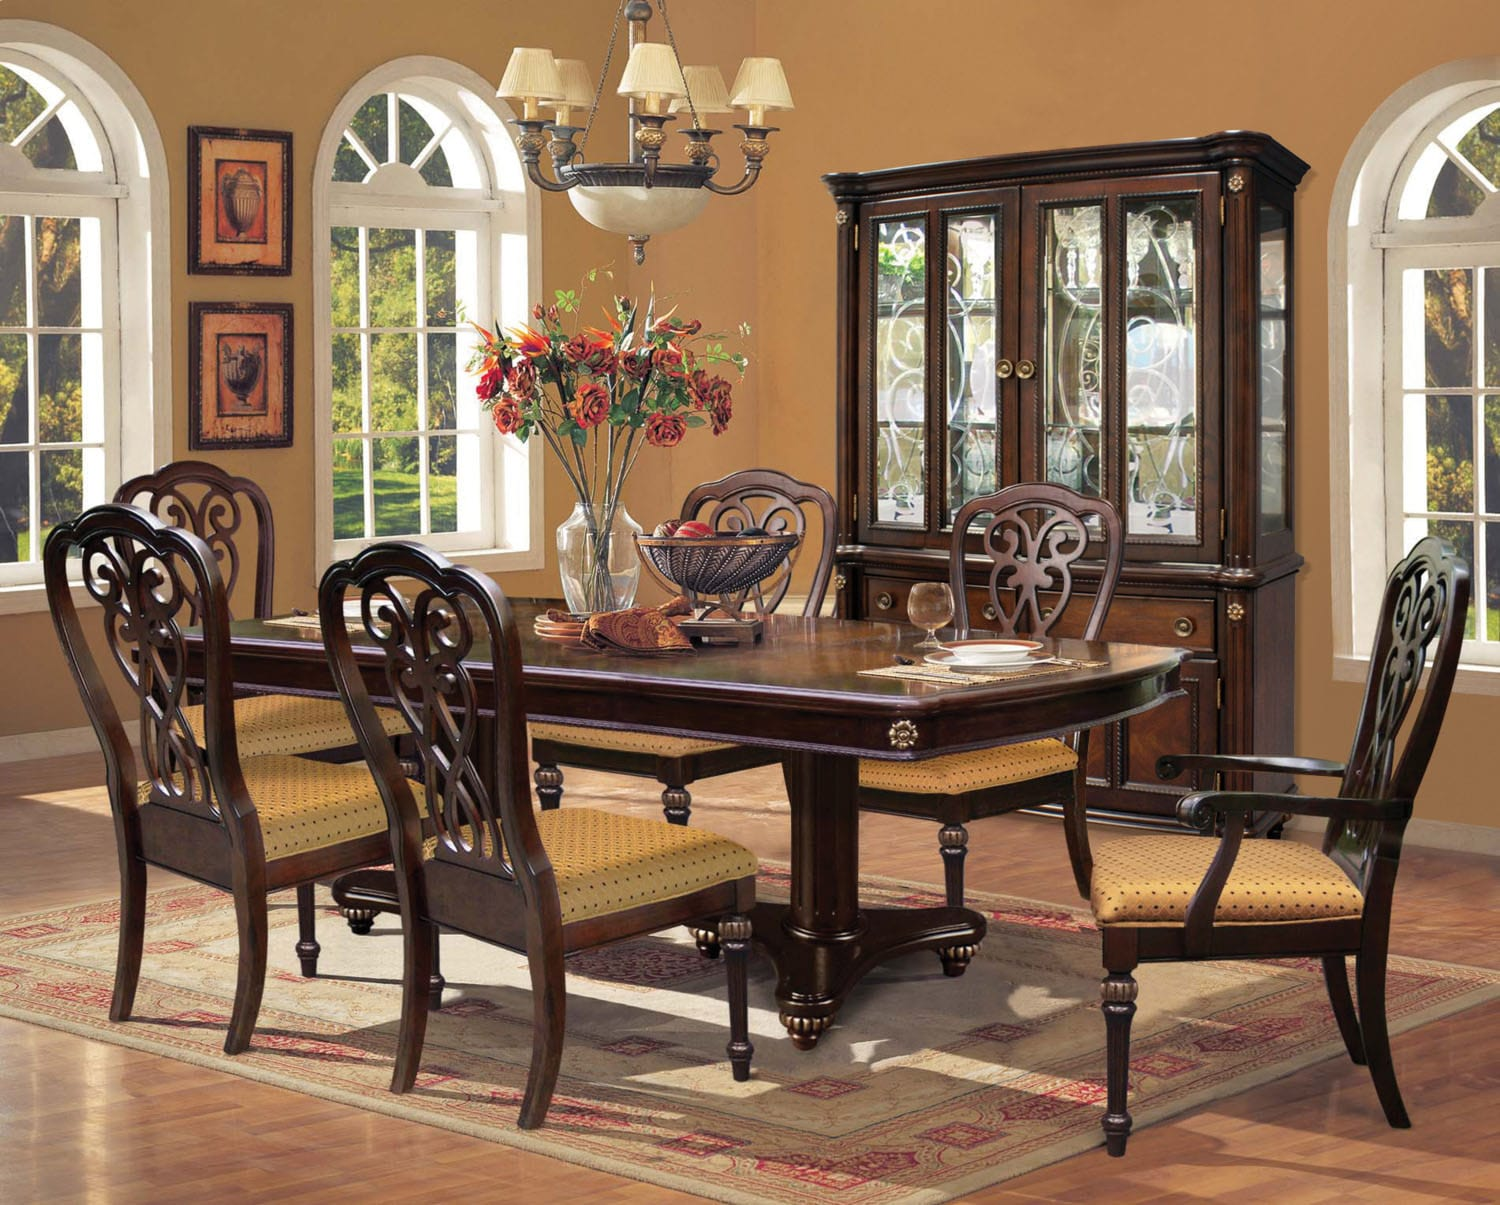 Dining Room Furniture - Newcastle 9-Piece Dining Package